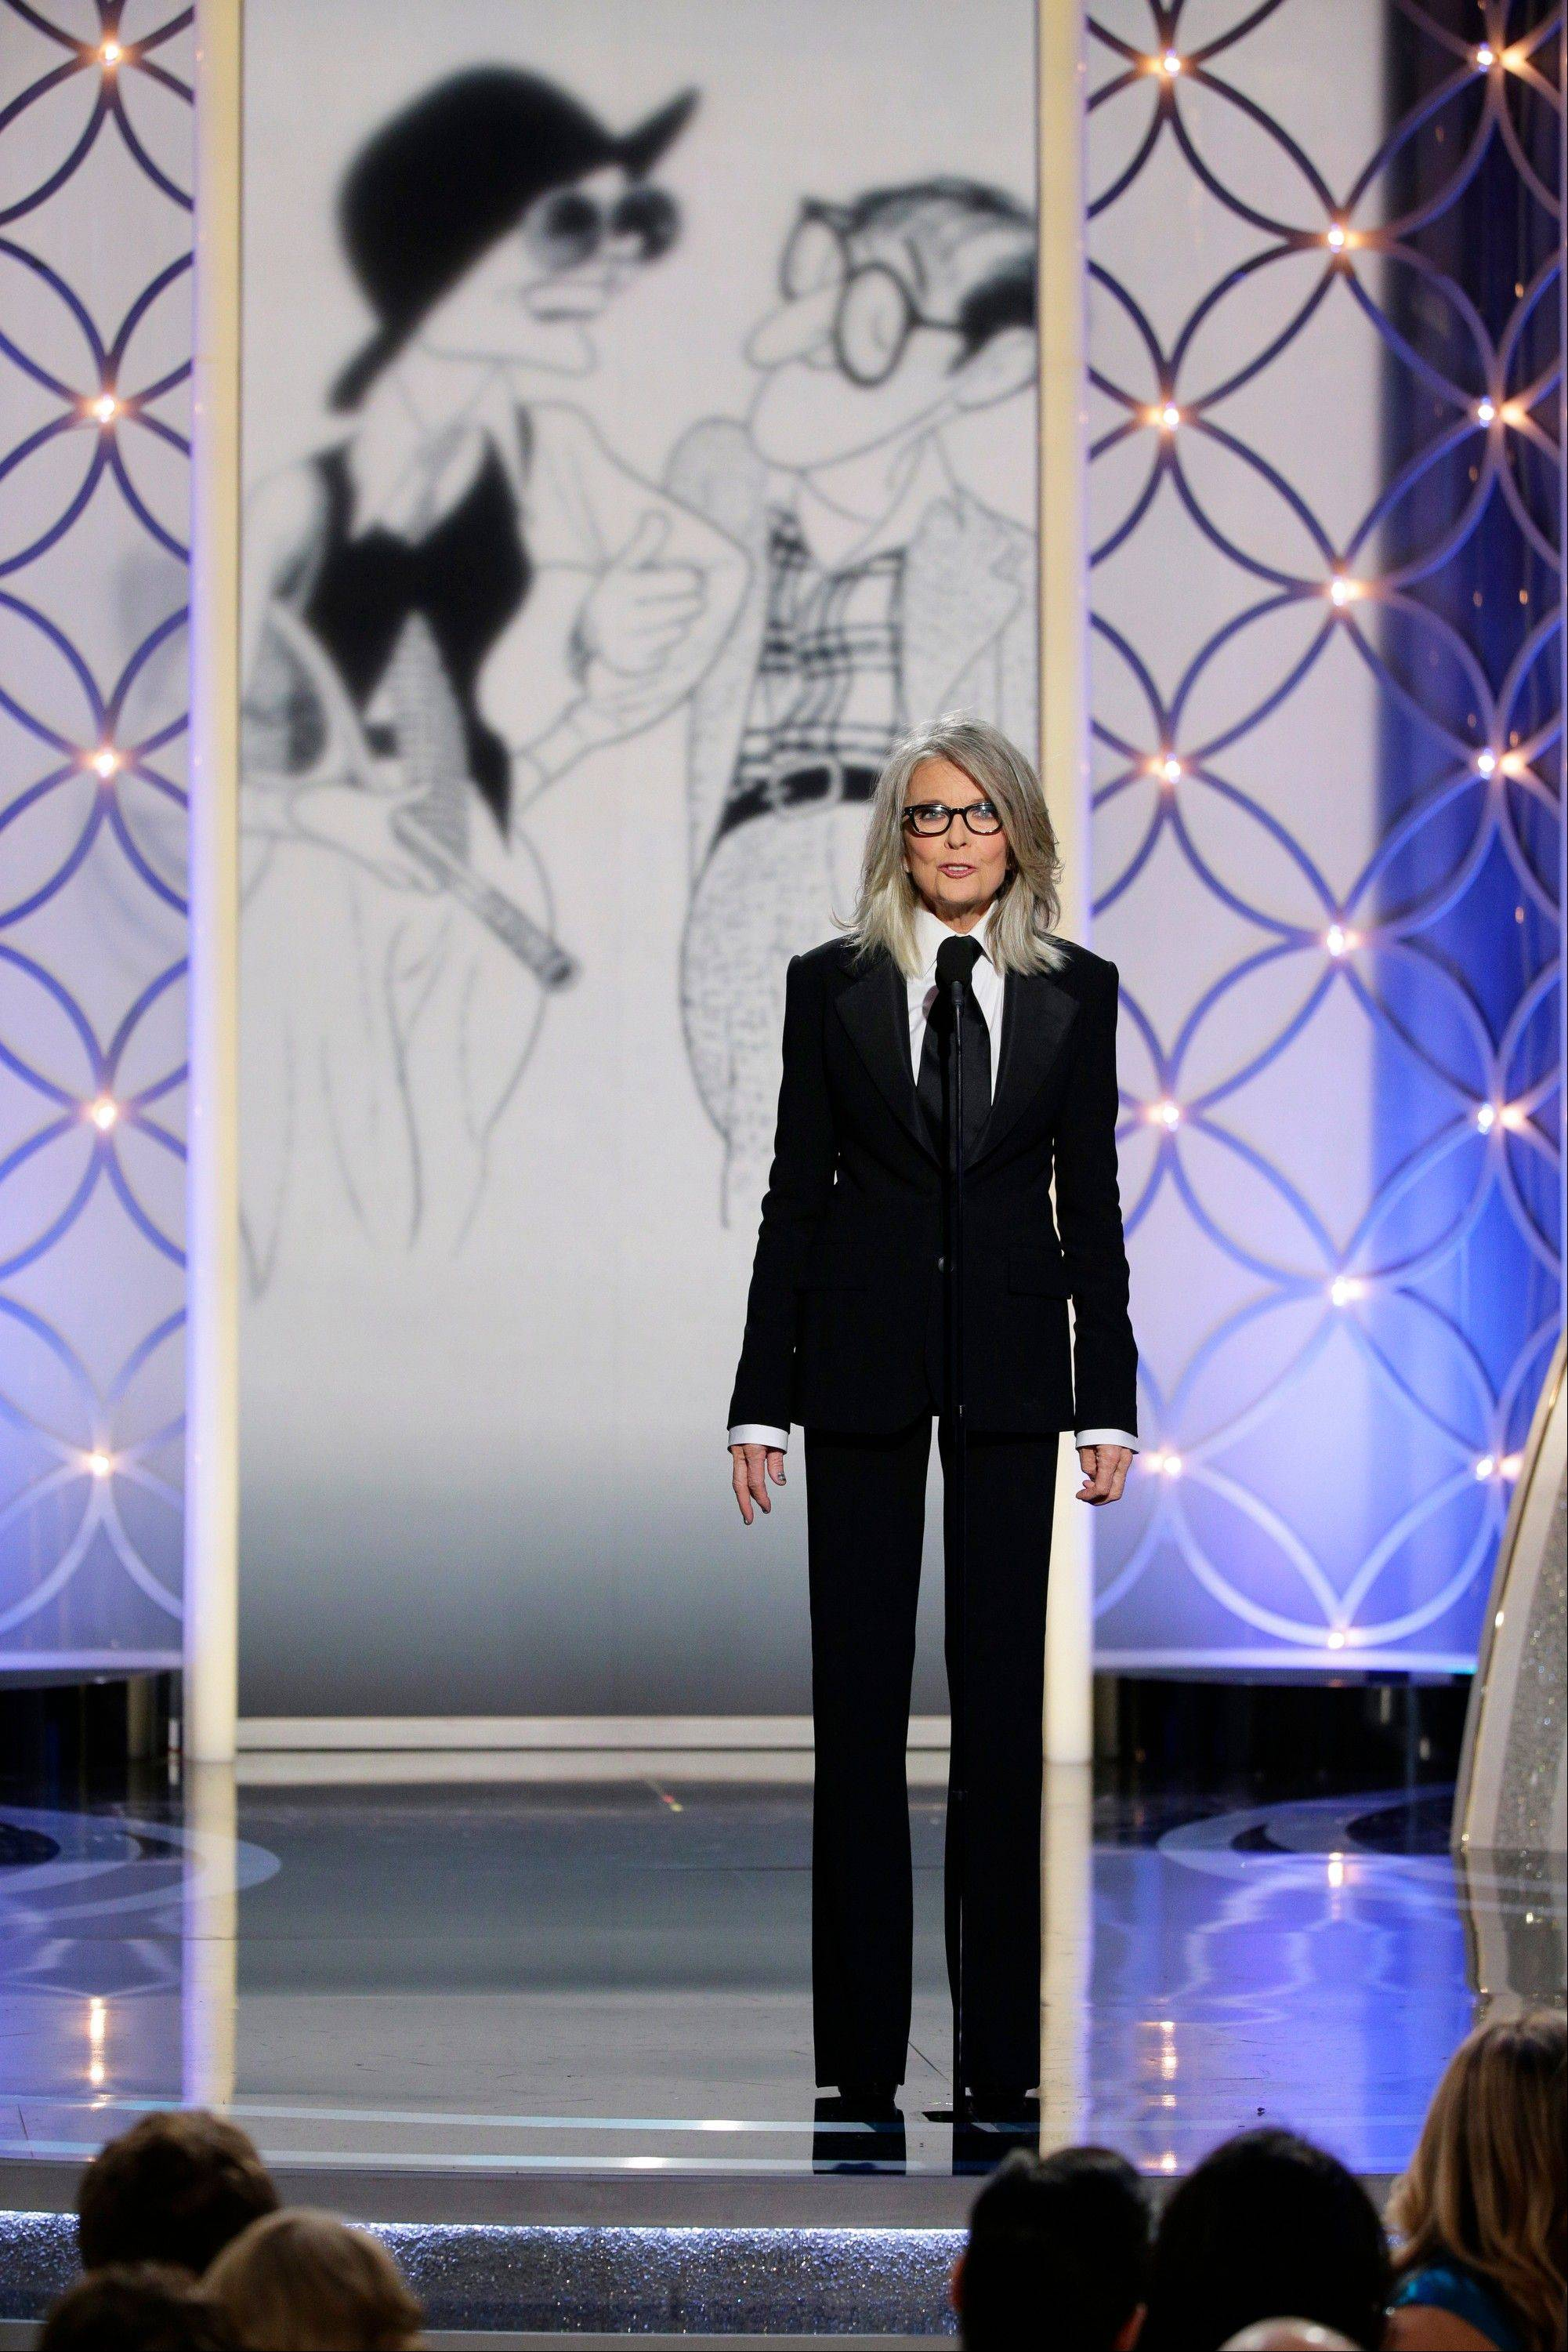 Diane Keaton accepted the Cecil B. DeMille award on behalf of Woody Allen during the 71st annual Golden Globe Awards on Sunday, Jan. 12.